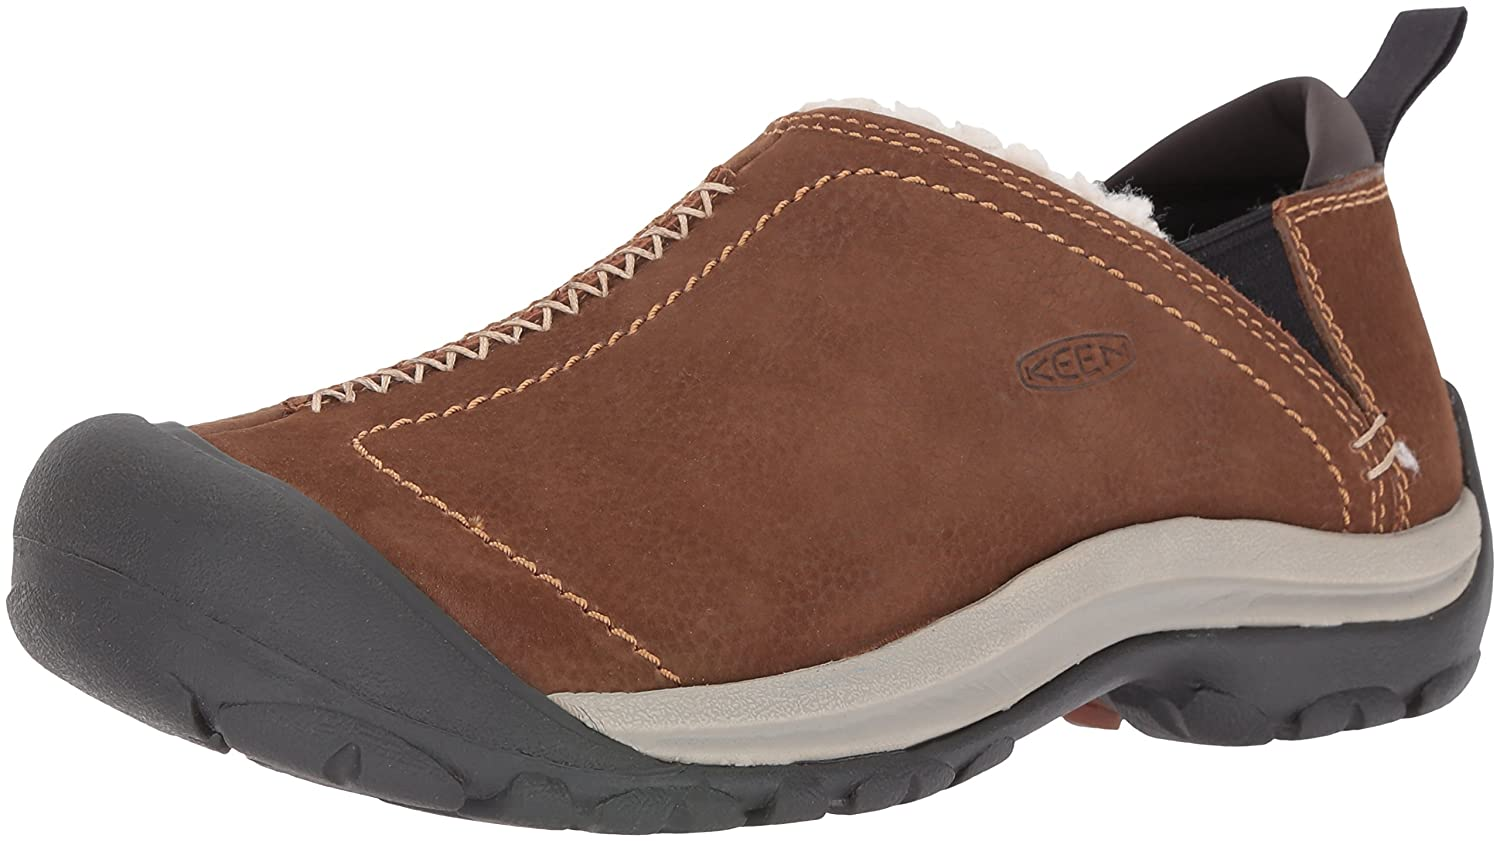 KEEN Women's Kaci Winter Waterproof Shoe B019FCYAYK 5 B(M) US|Oatmeal